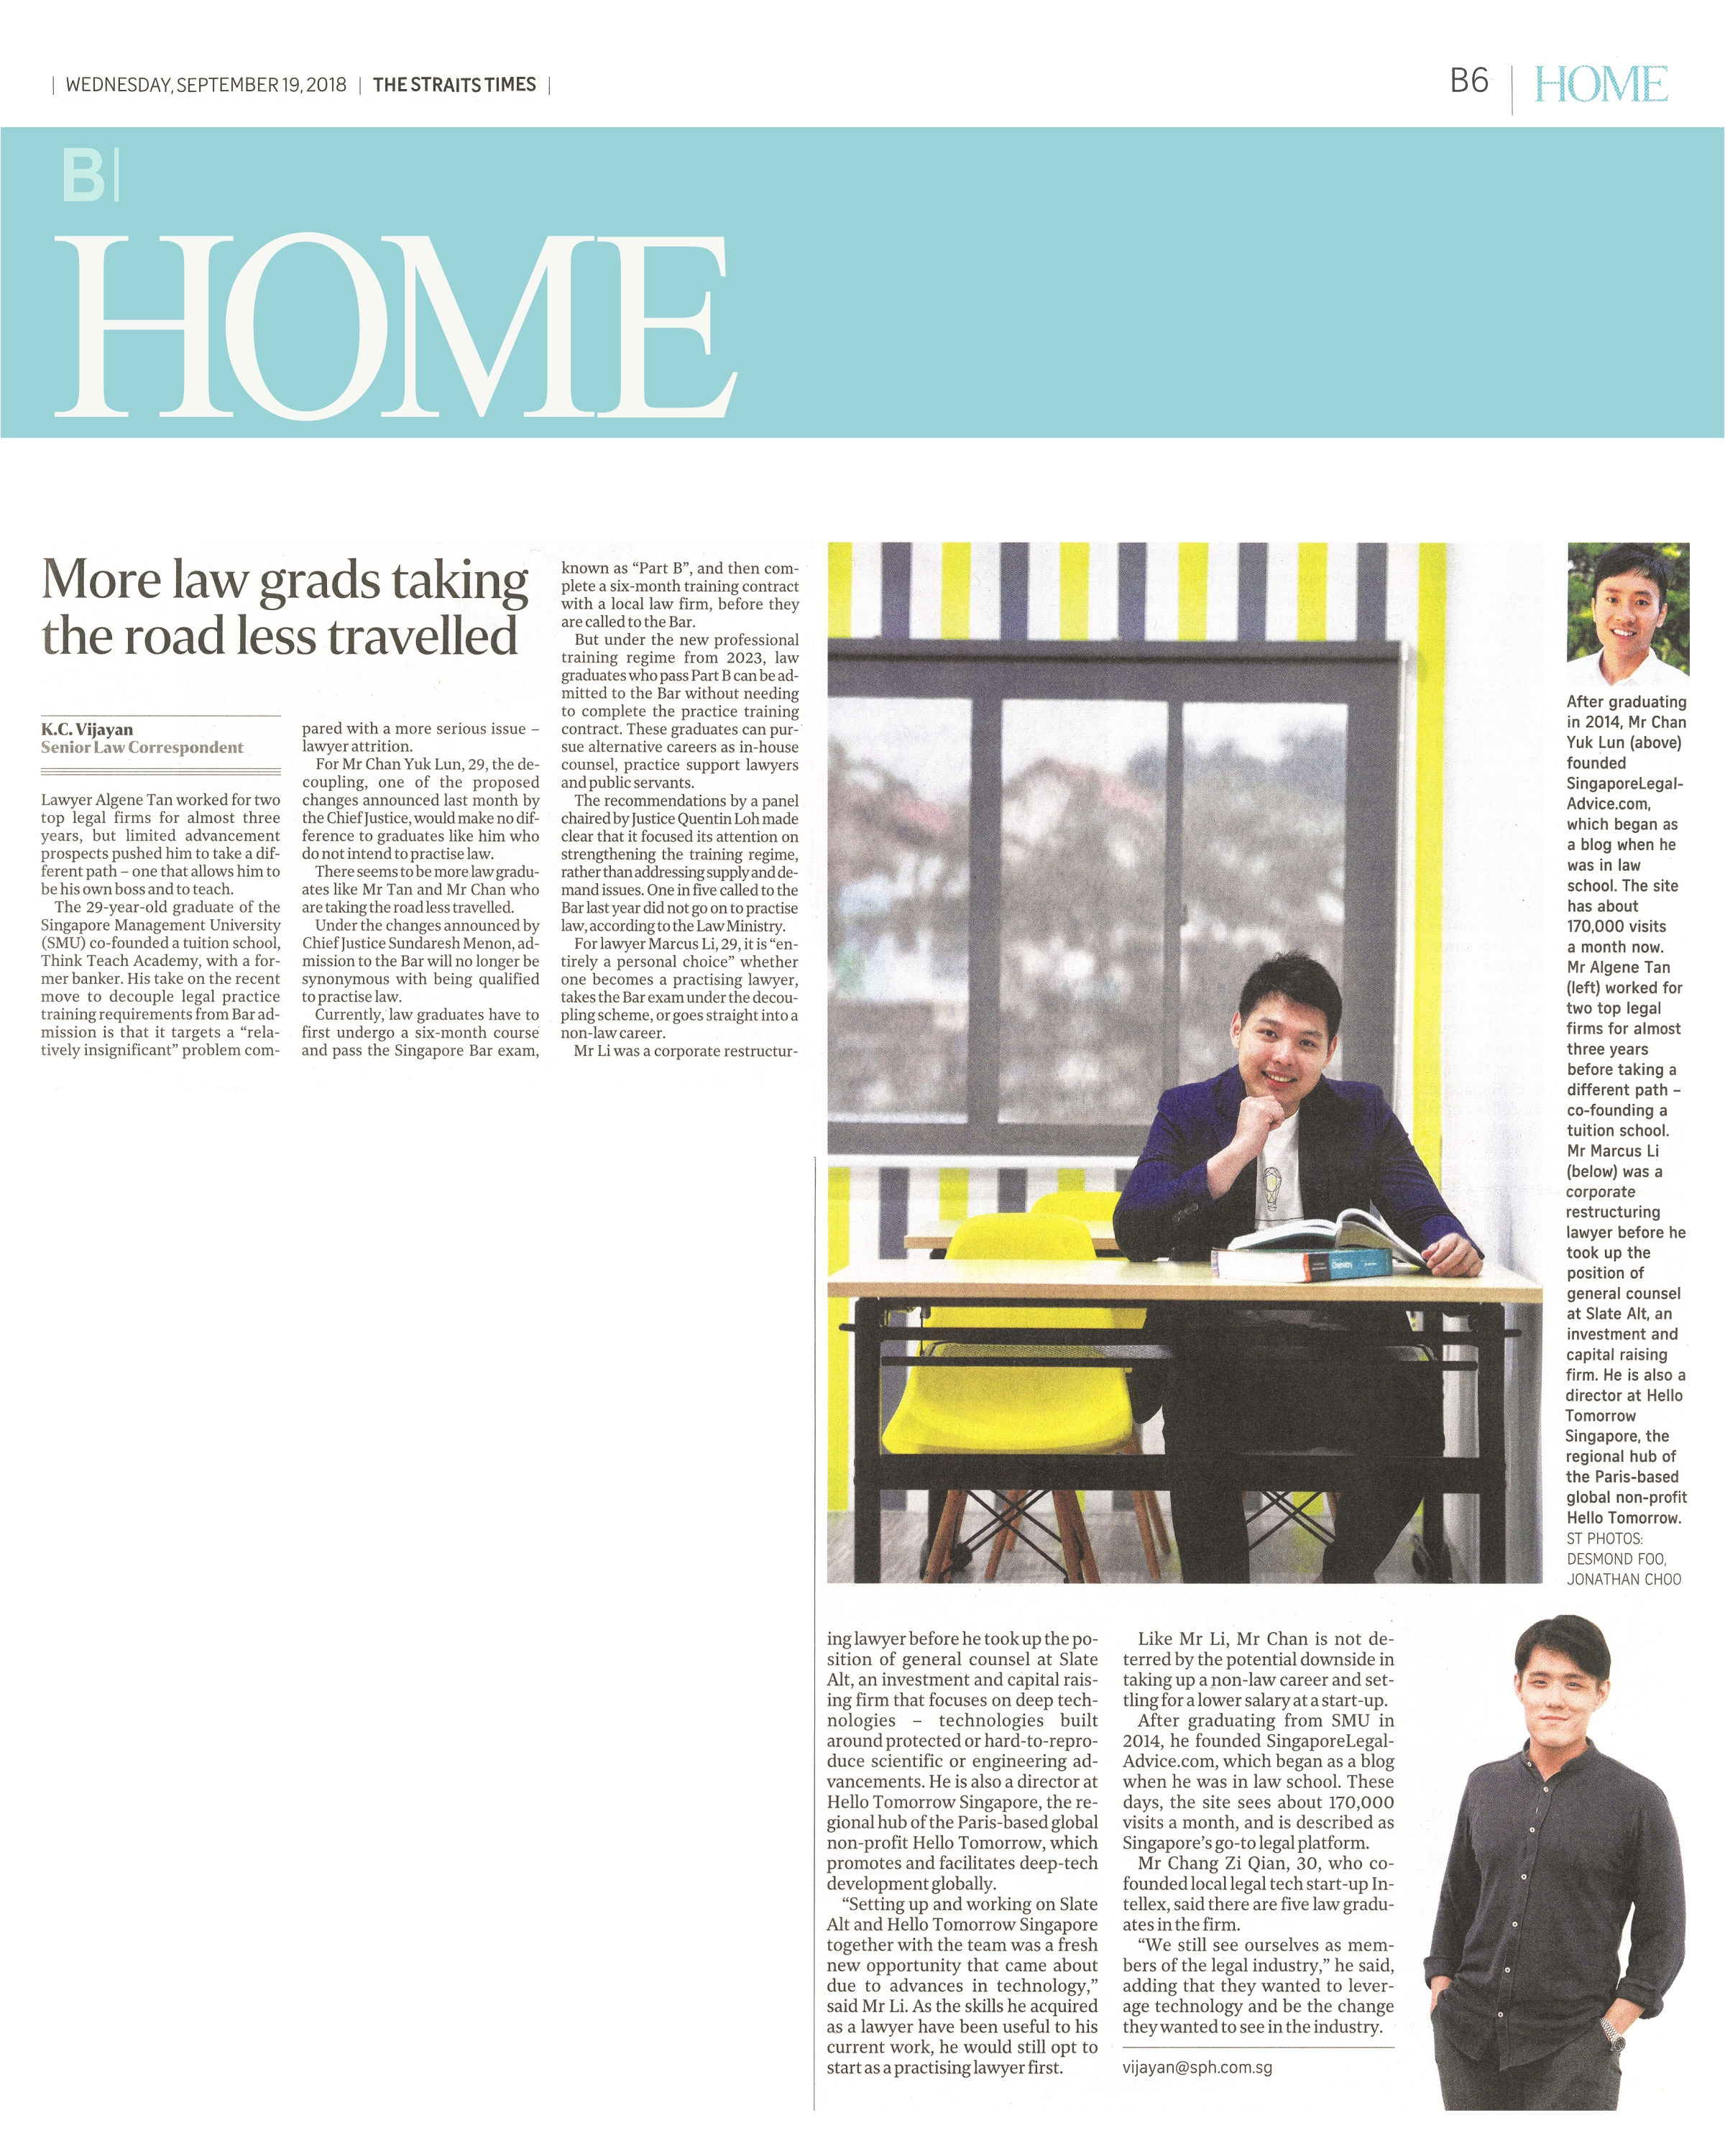 Co-founder Algene featured in The Straits Times, Pg B06 on the 19th of September 2018.